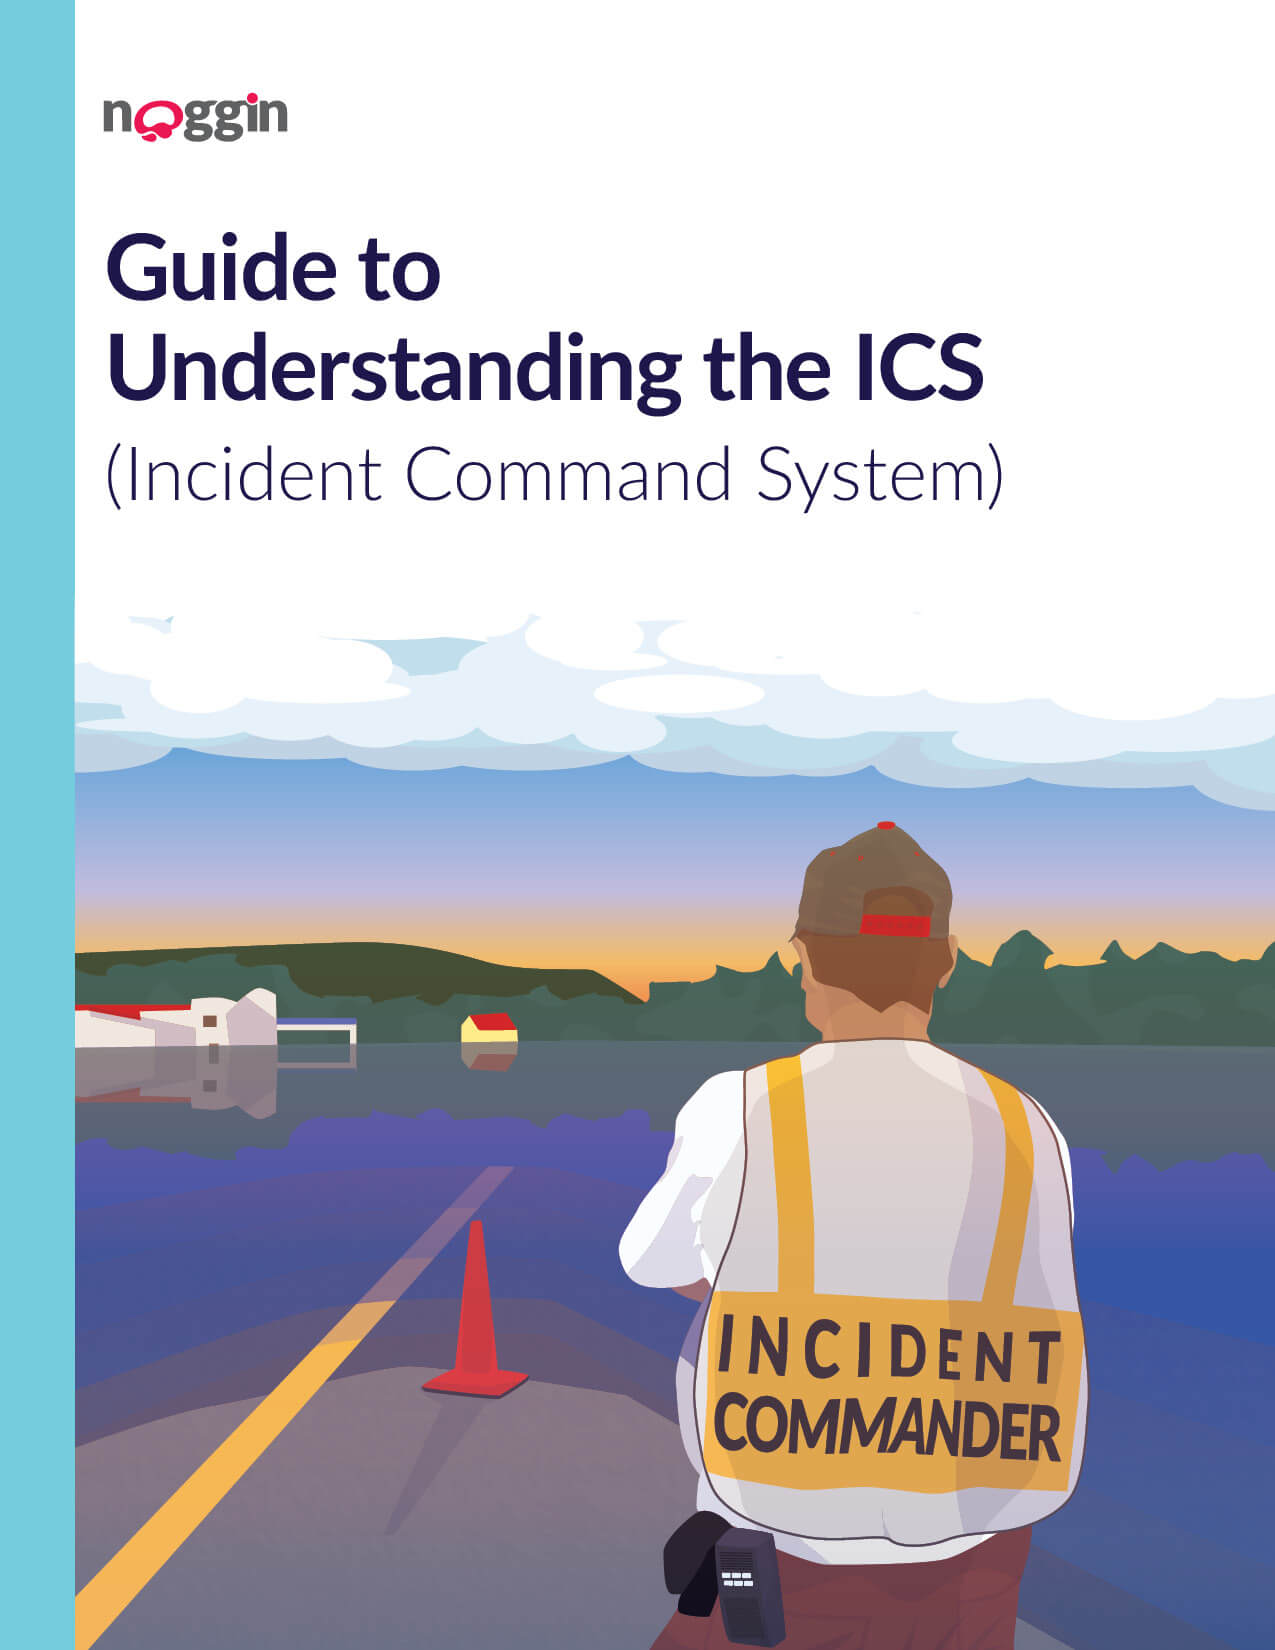 Noggin white paper guide on Understanding the Incident Command System. This was created to drive marketing qualified leads for the Noggin OCA product from the website. Page 1 of 10